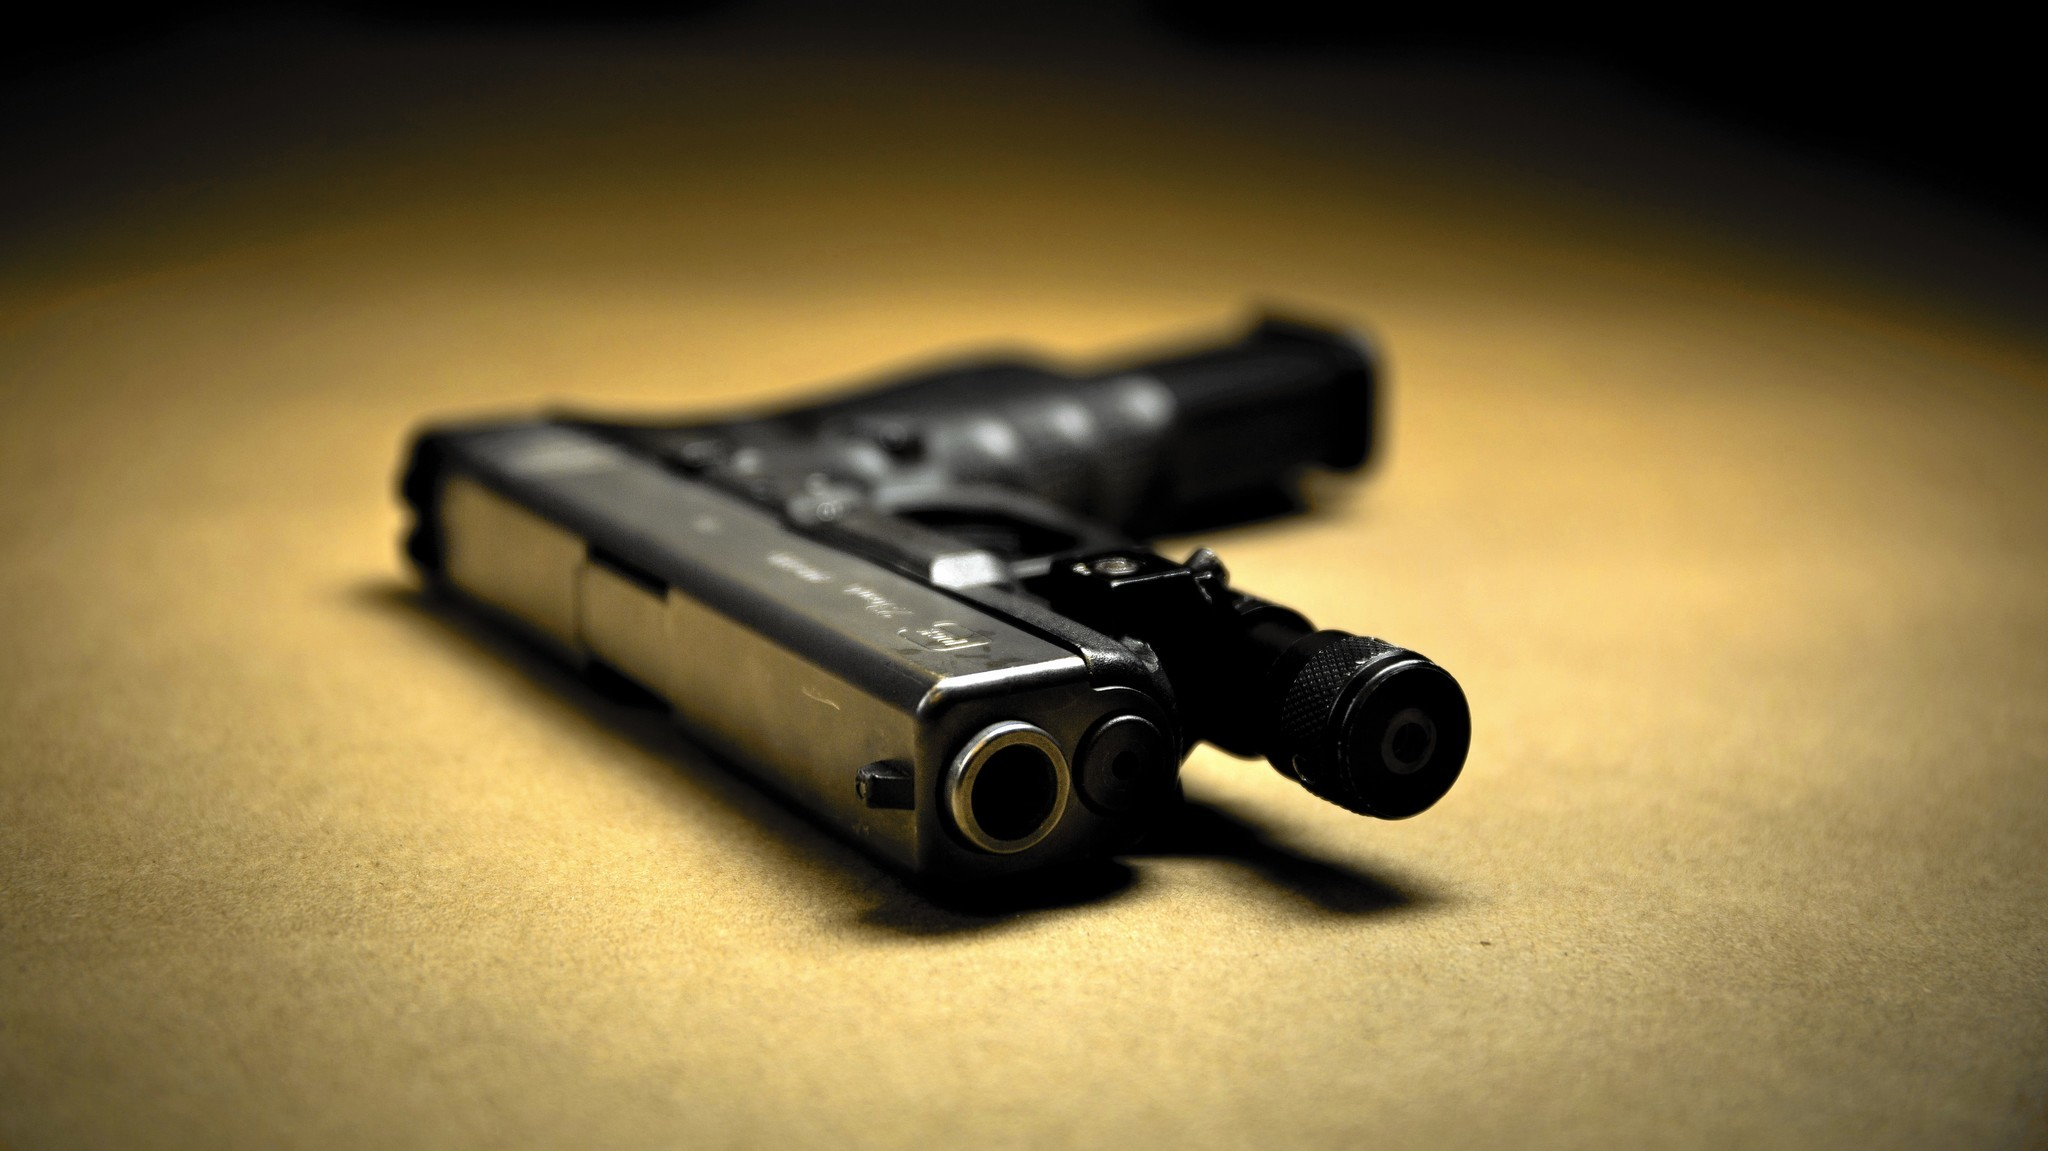 One guns journey 42 bullets fired 2 killed 5 wounded chicago tribune